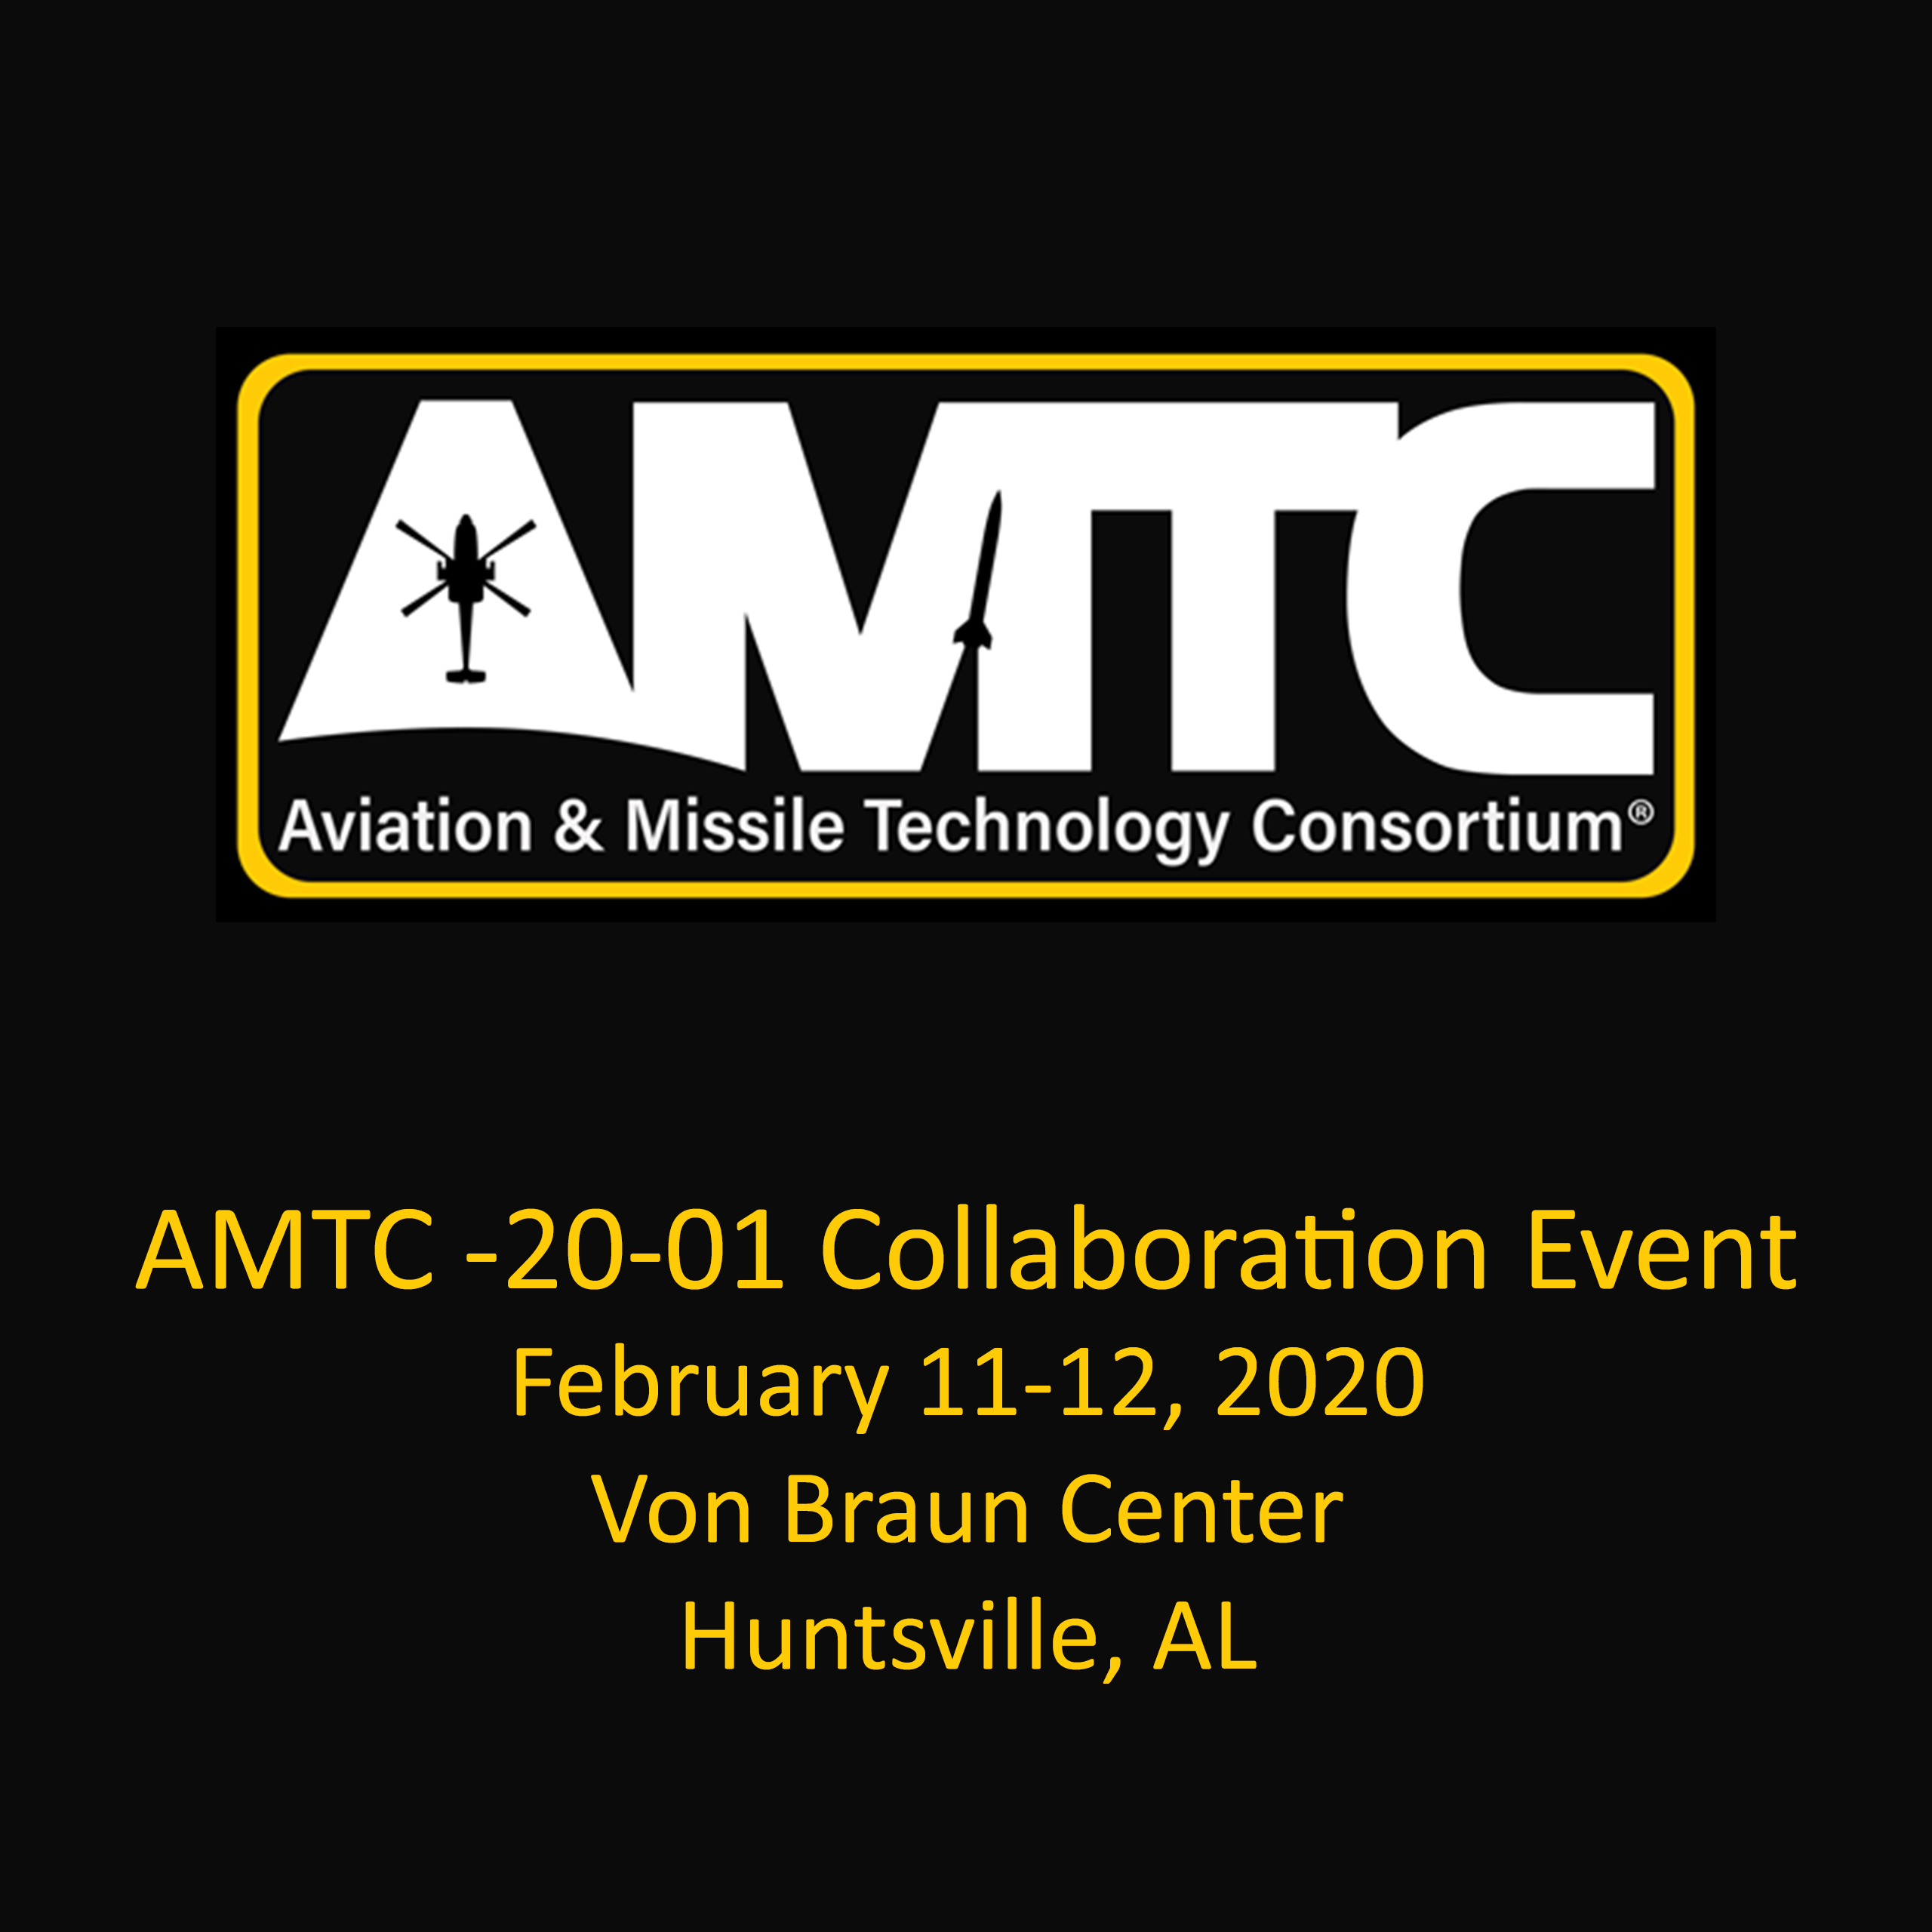 AMTC 20-01 Collaboration Event; February 11-12, 202; Von Braun Center, Hunstville, AL